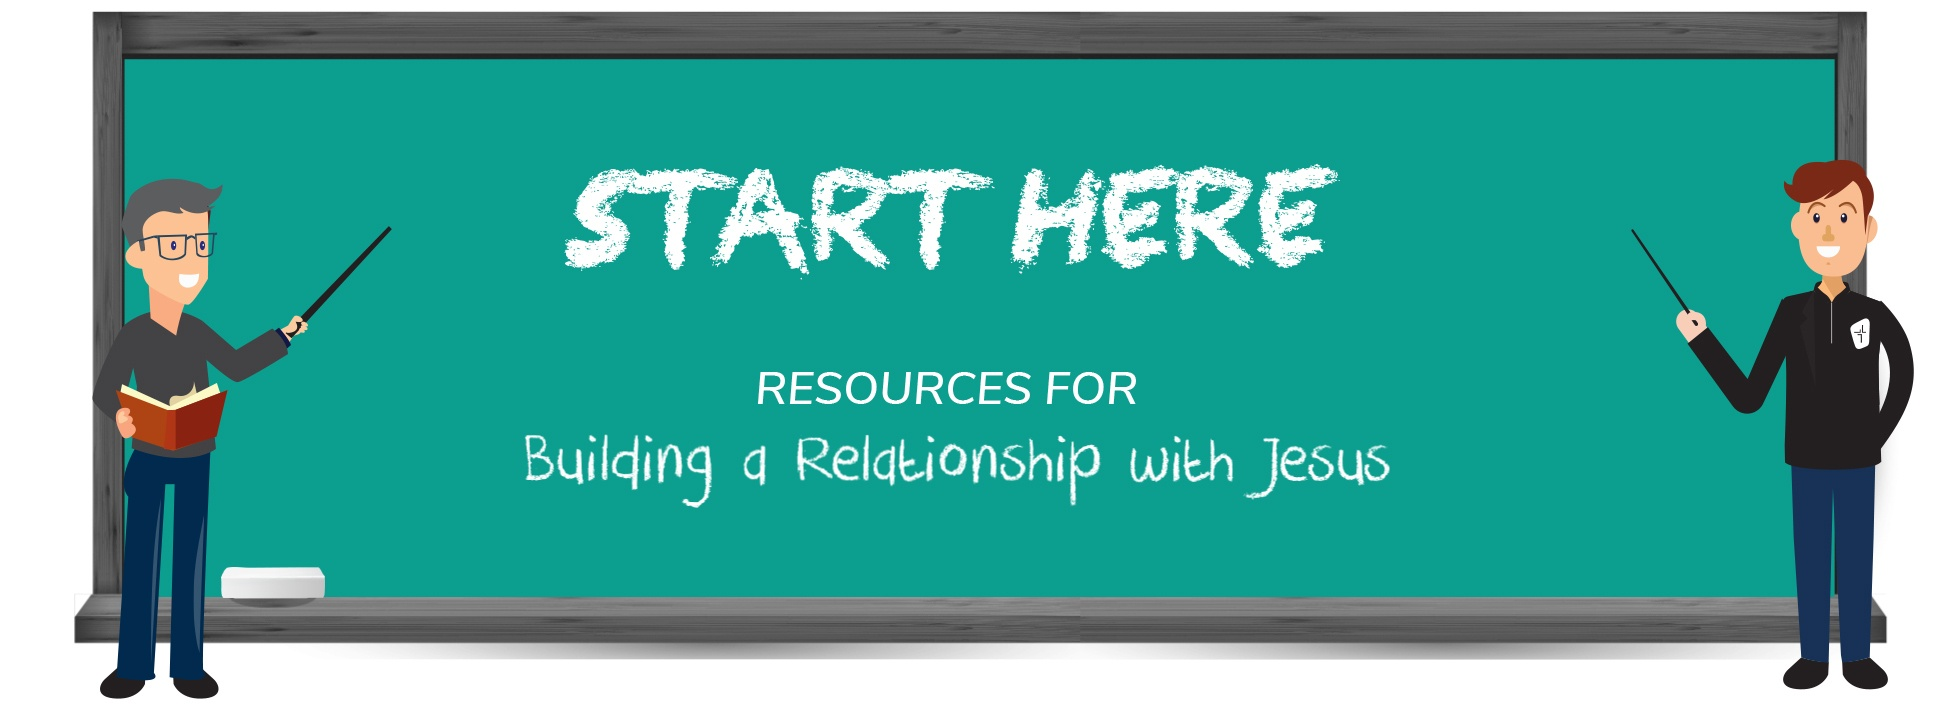 Building a Relationship with Jesus